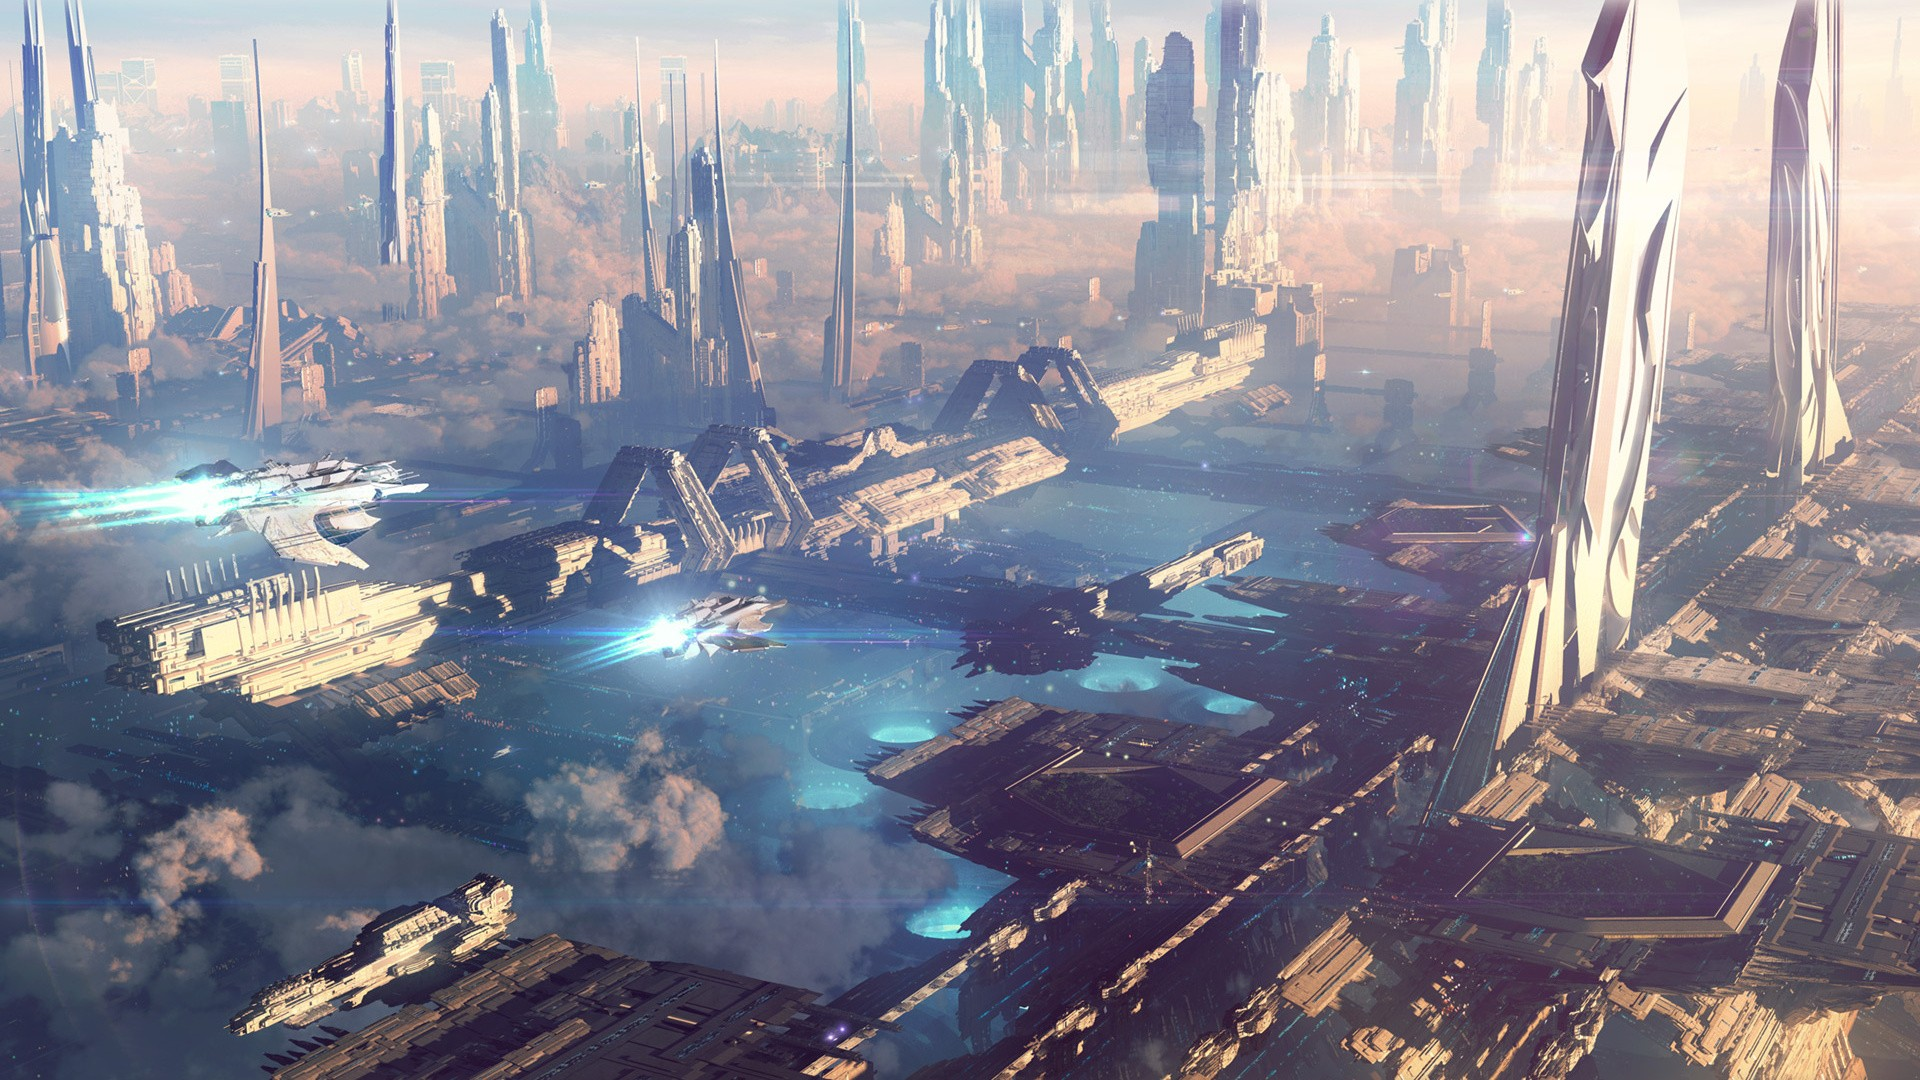 Futuristic City Wallpaper 30